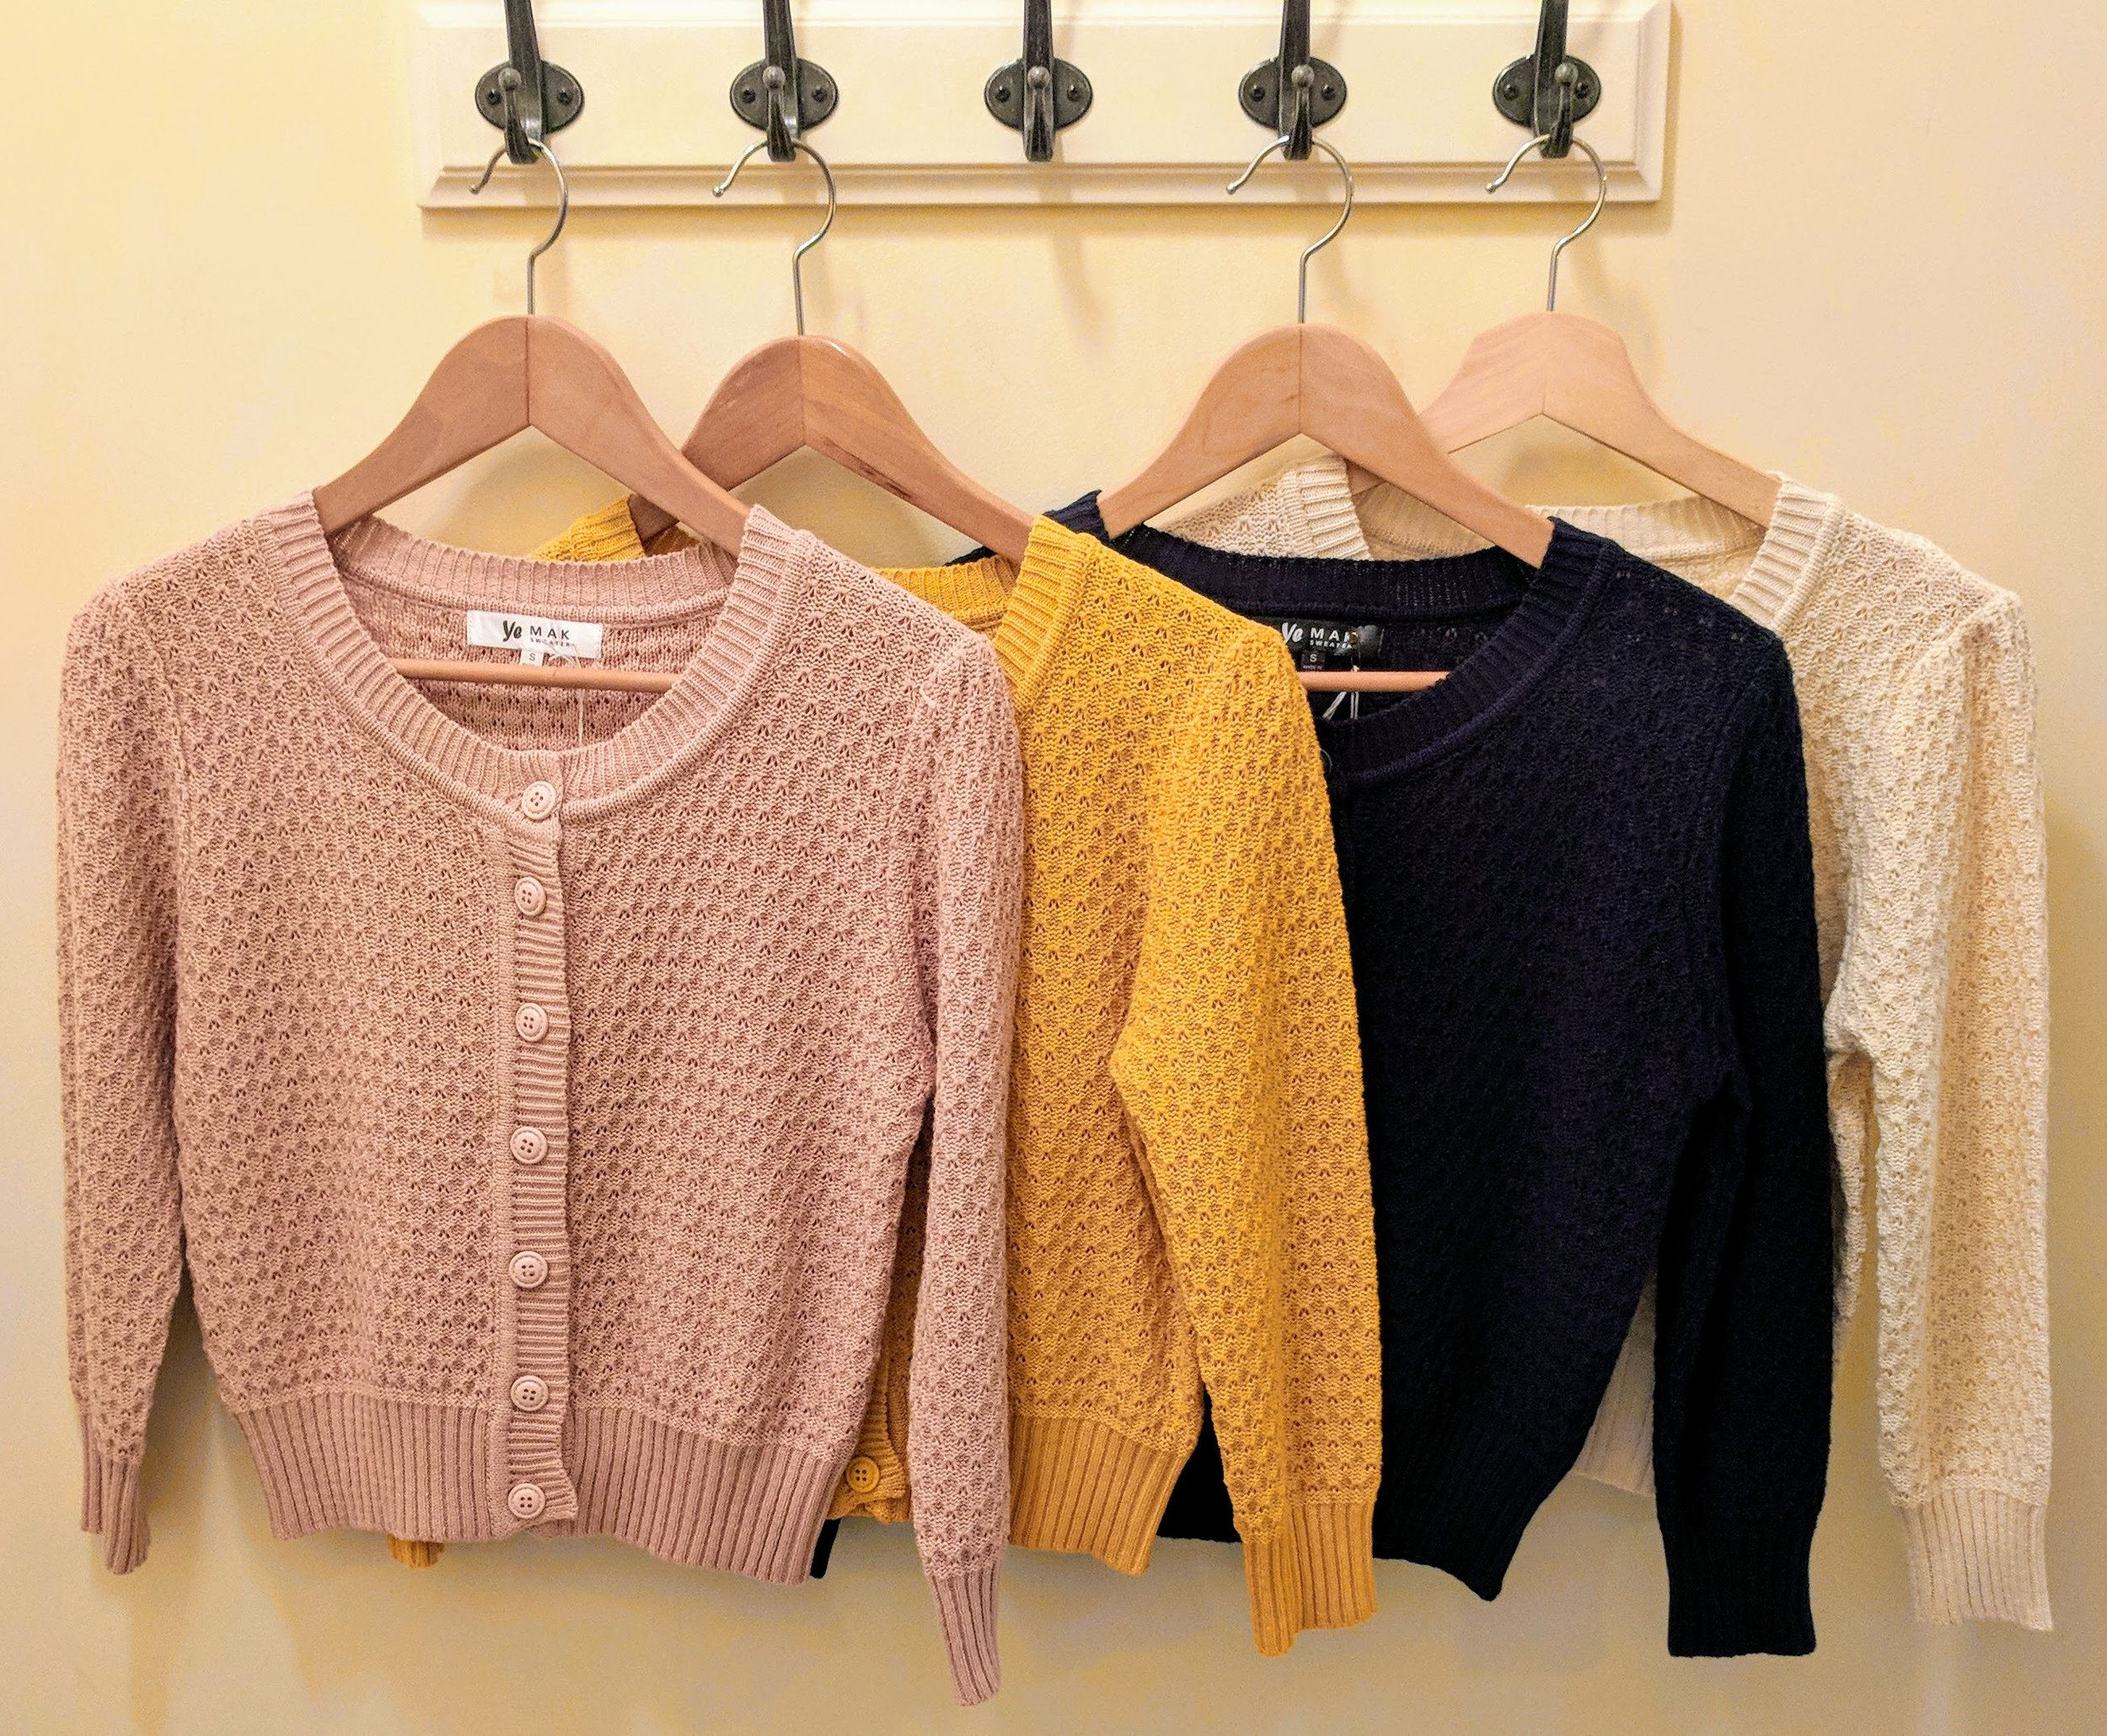 Cushion knit button up cardi. Peach, Mustard, Navy and Ivory.